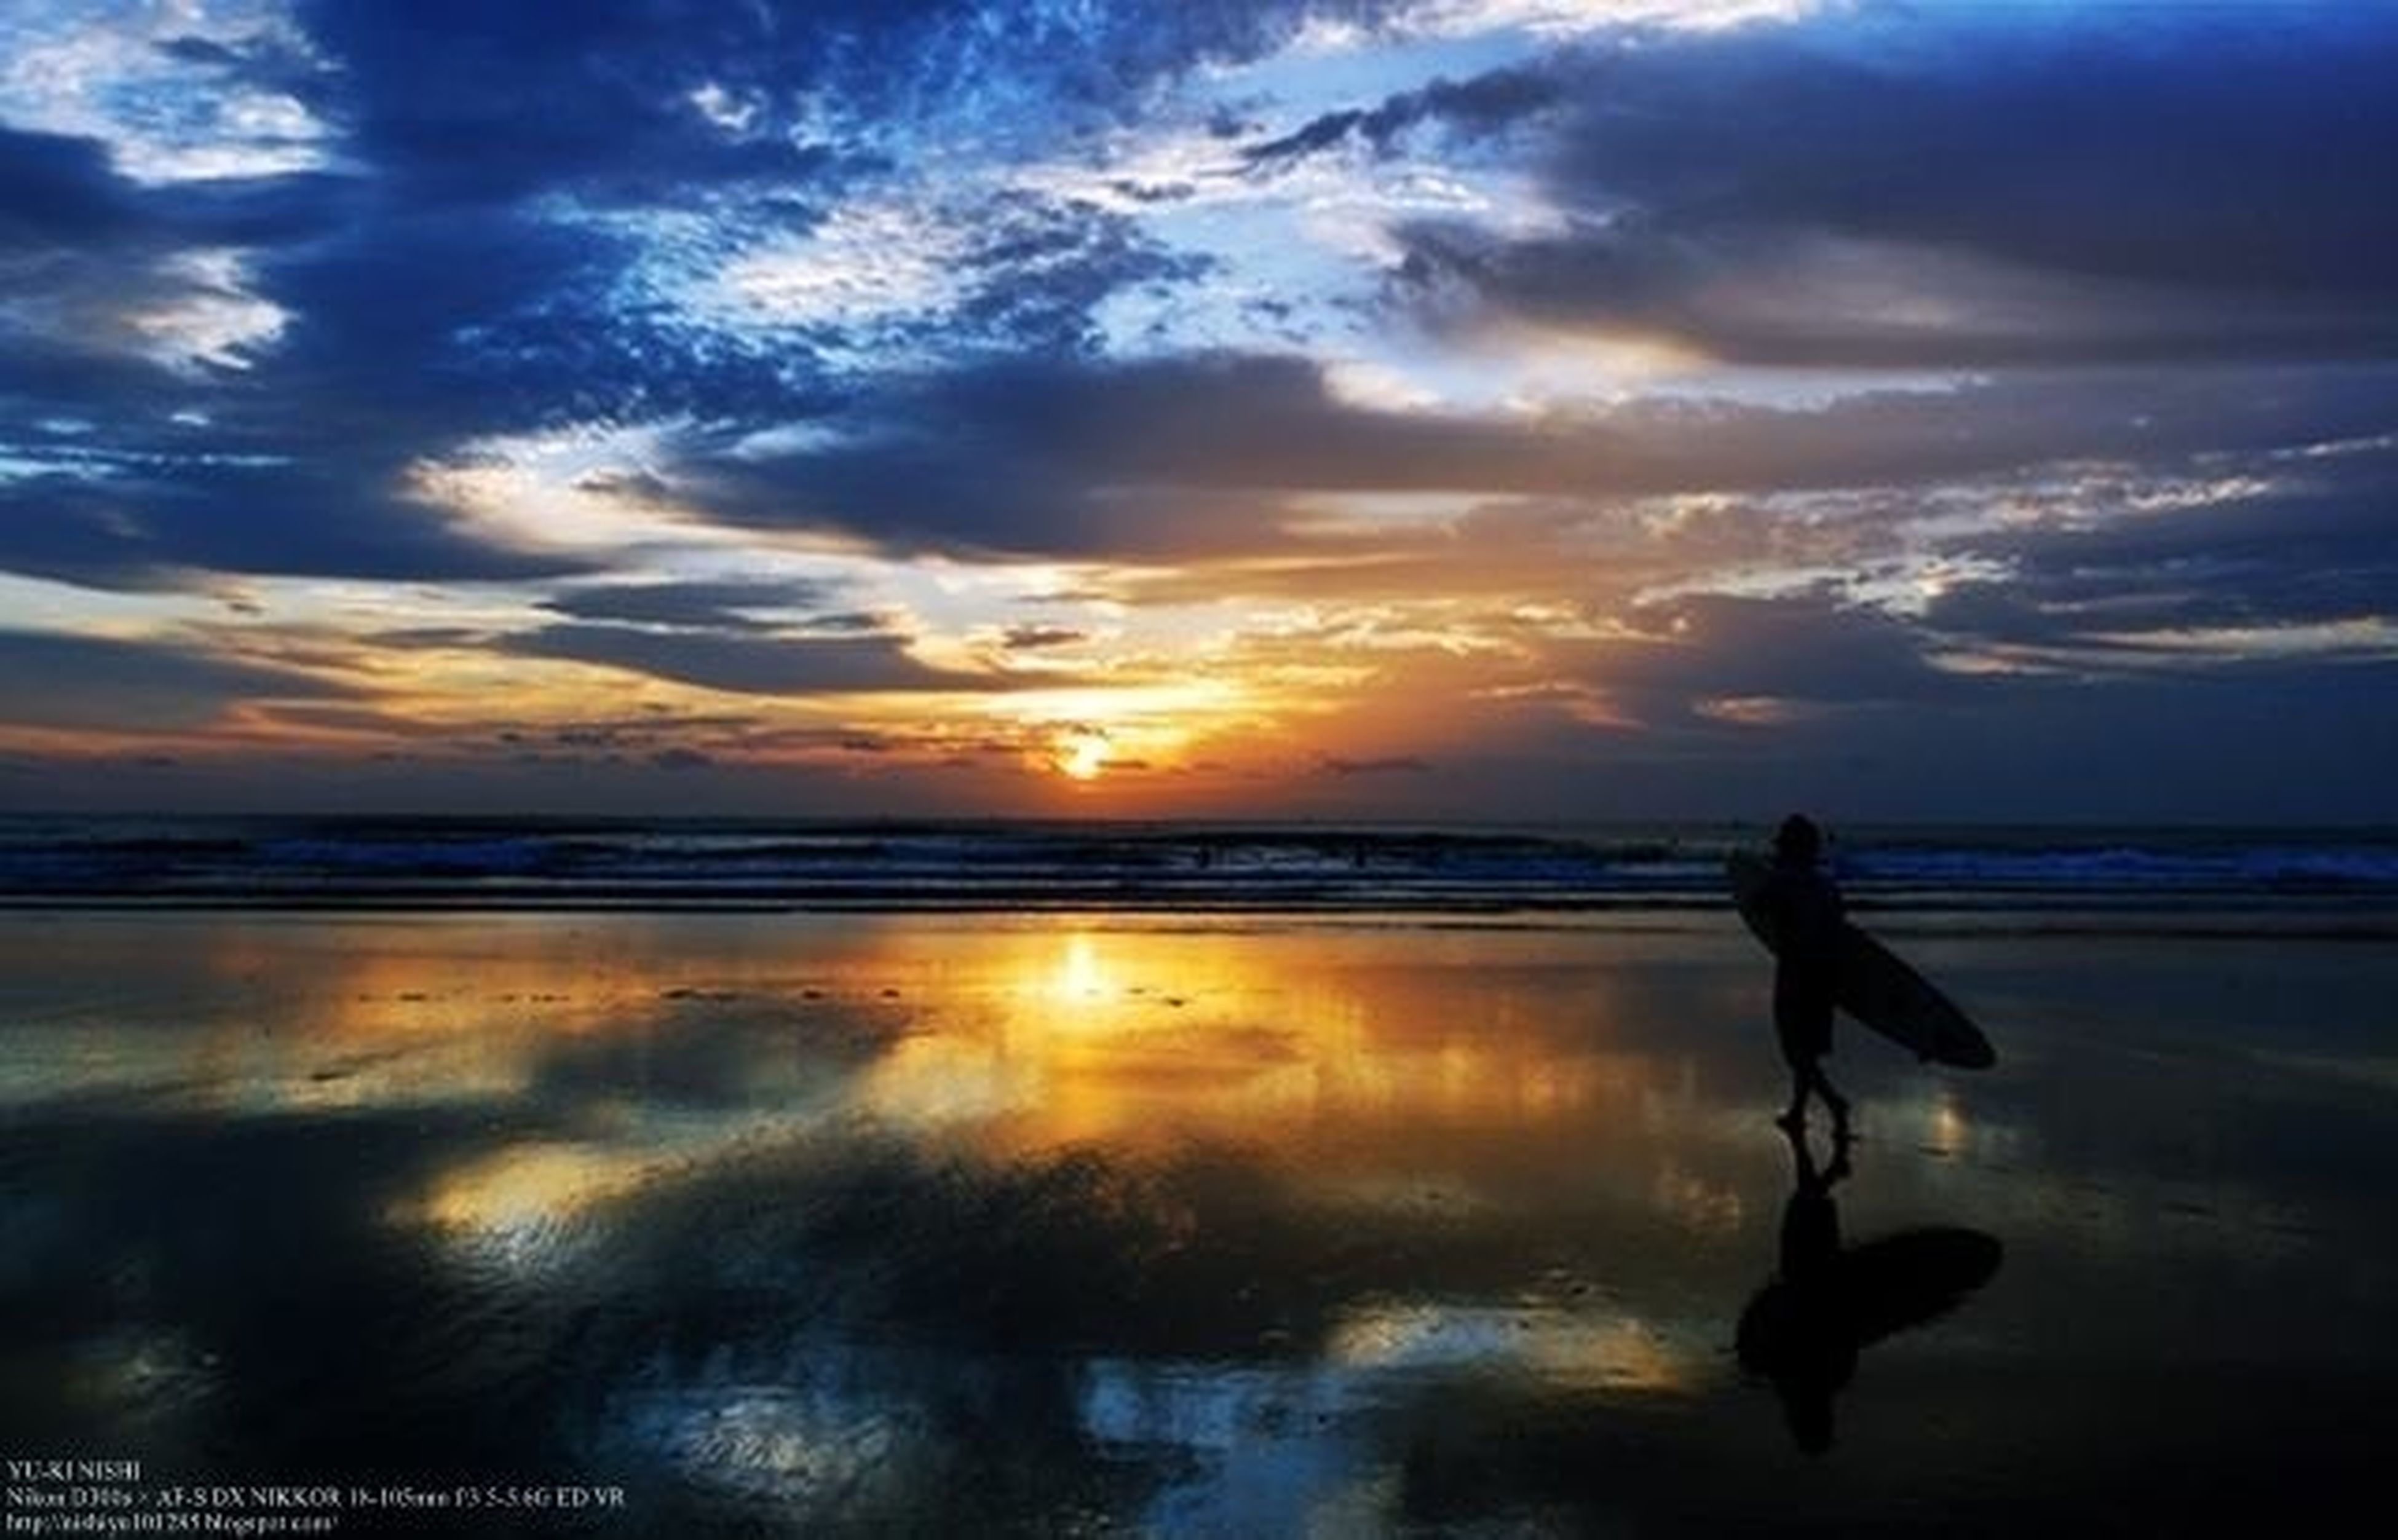 sunset, horizon over water, water, sea, sky, beach, reflection, scenics, cloud - sky, beauty in nature, orange color, shore, tranquil scene, silhouette, tranquility, idyllic, cloud, nature, sun, cloudy